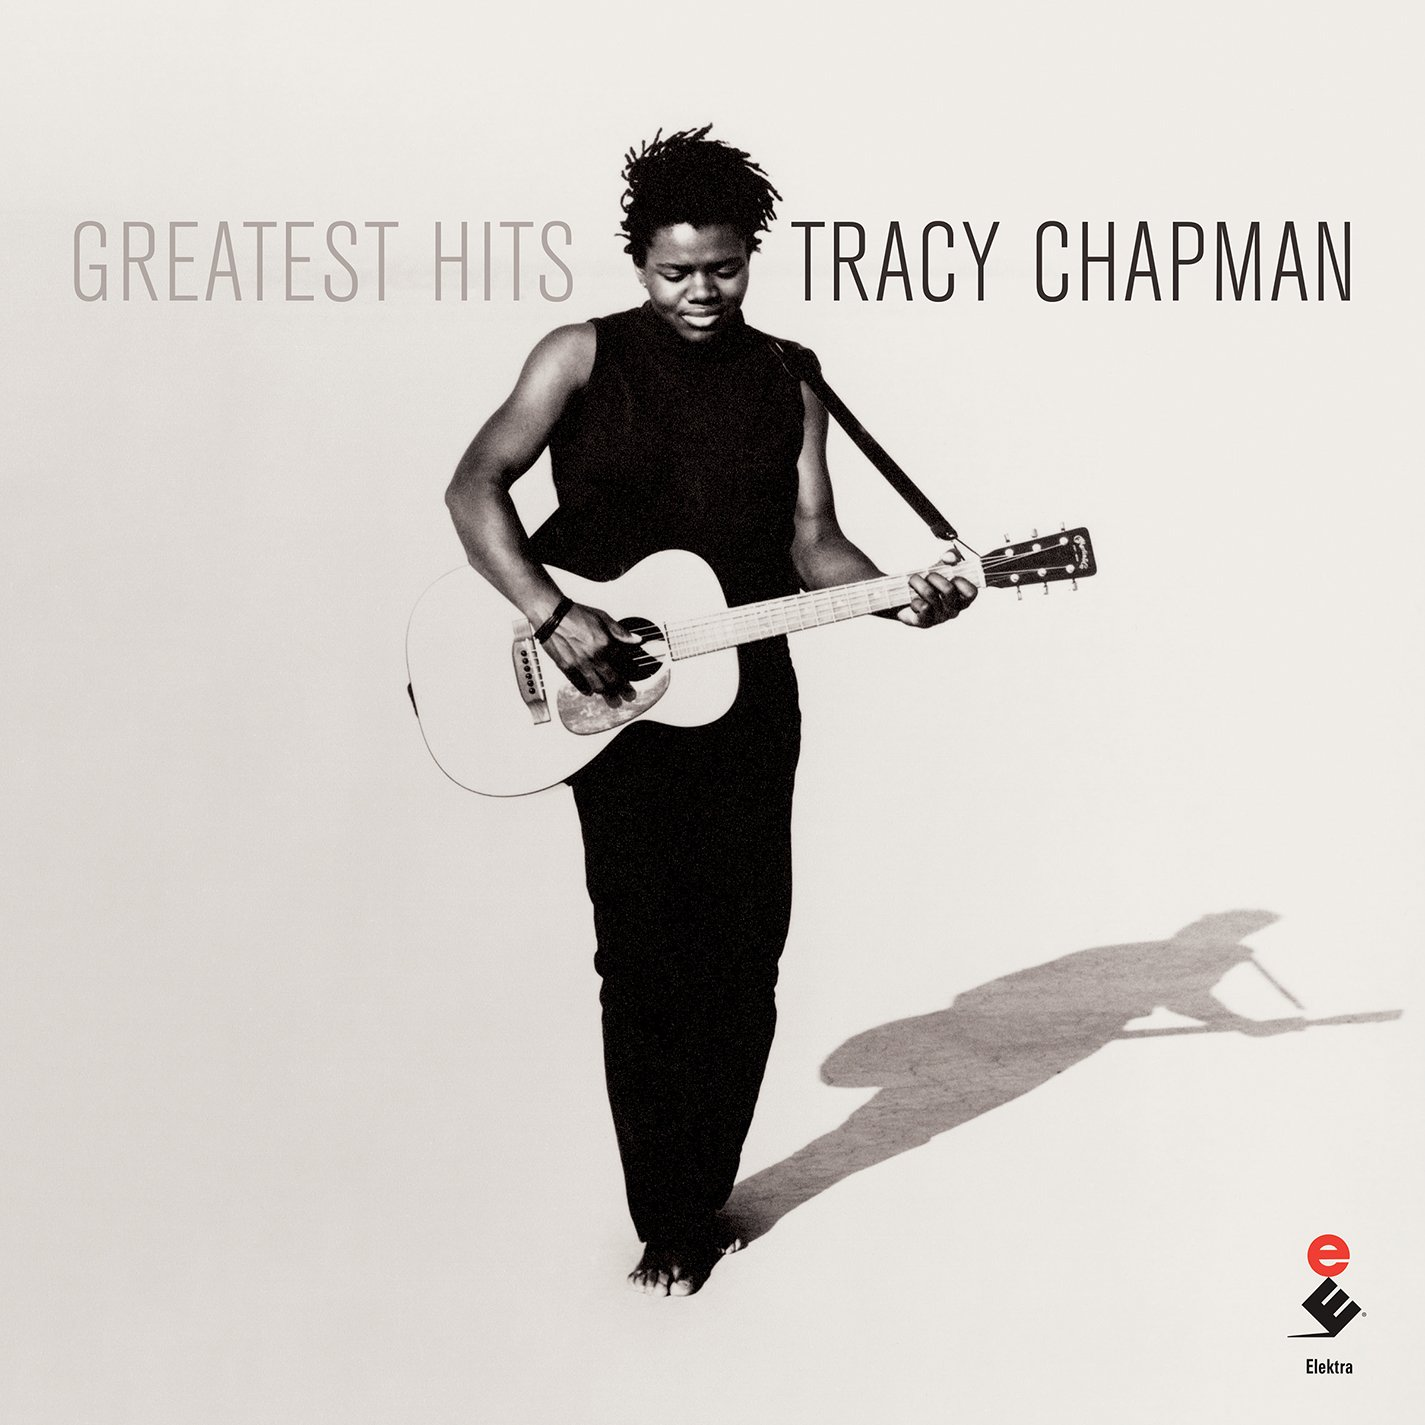 Image result for tracy chapman greatest hits""